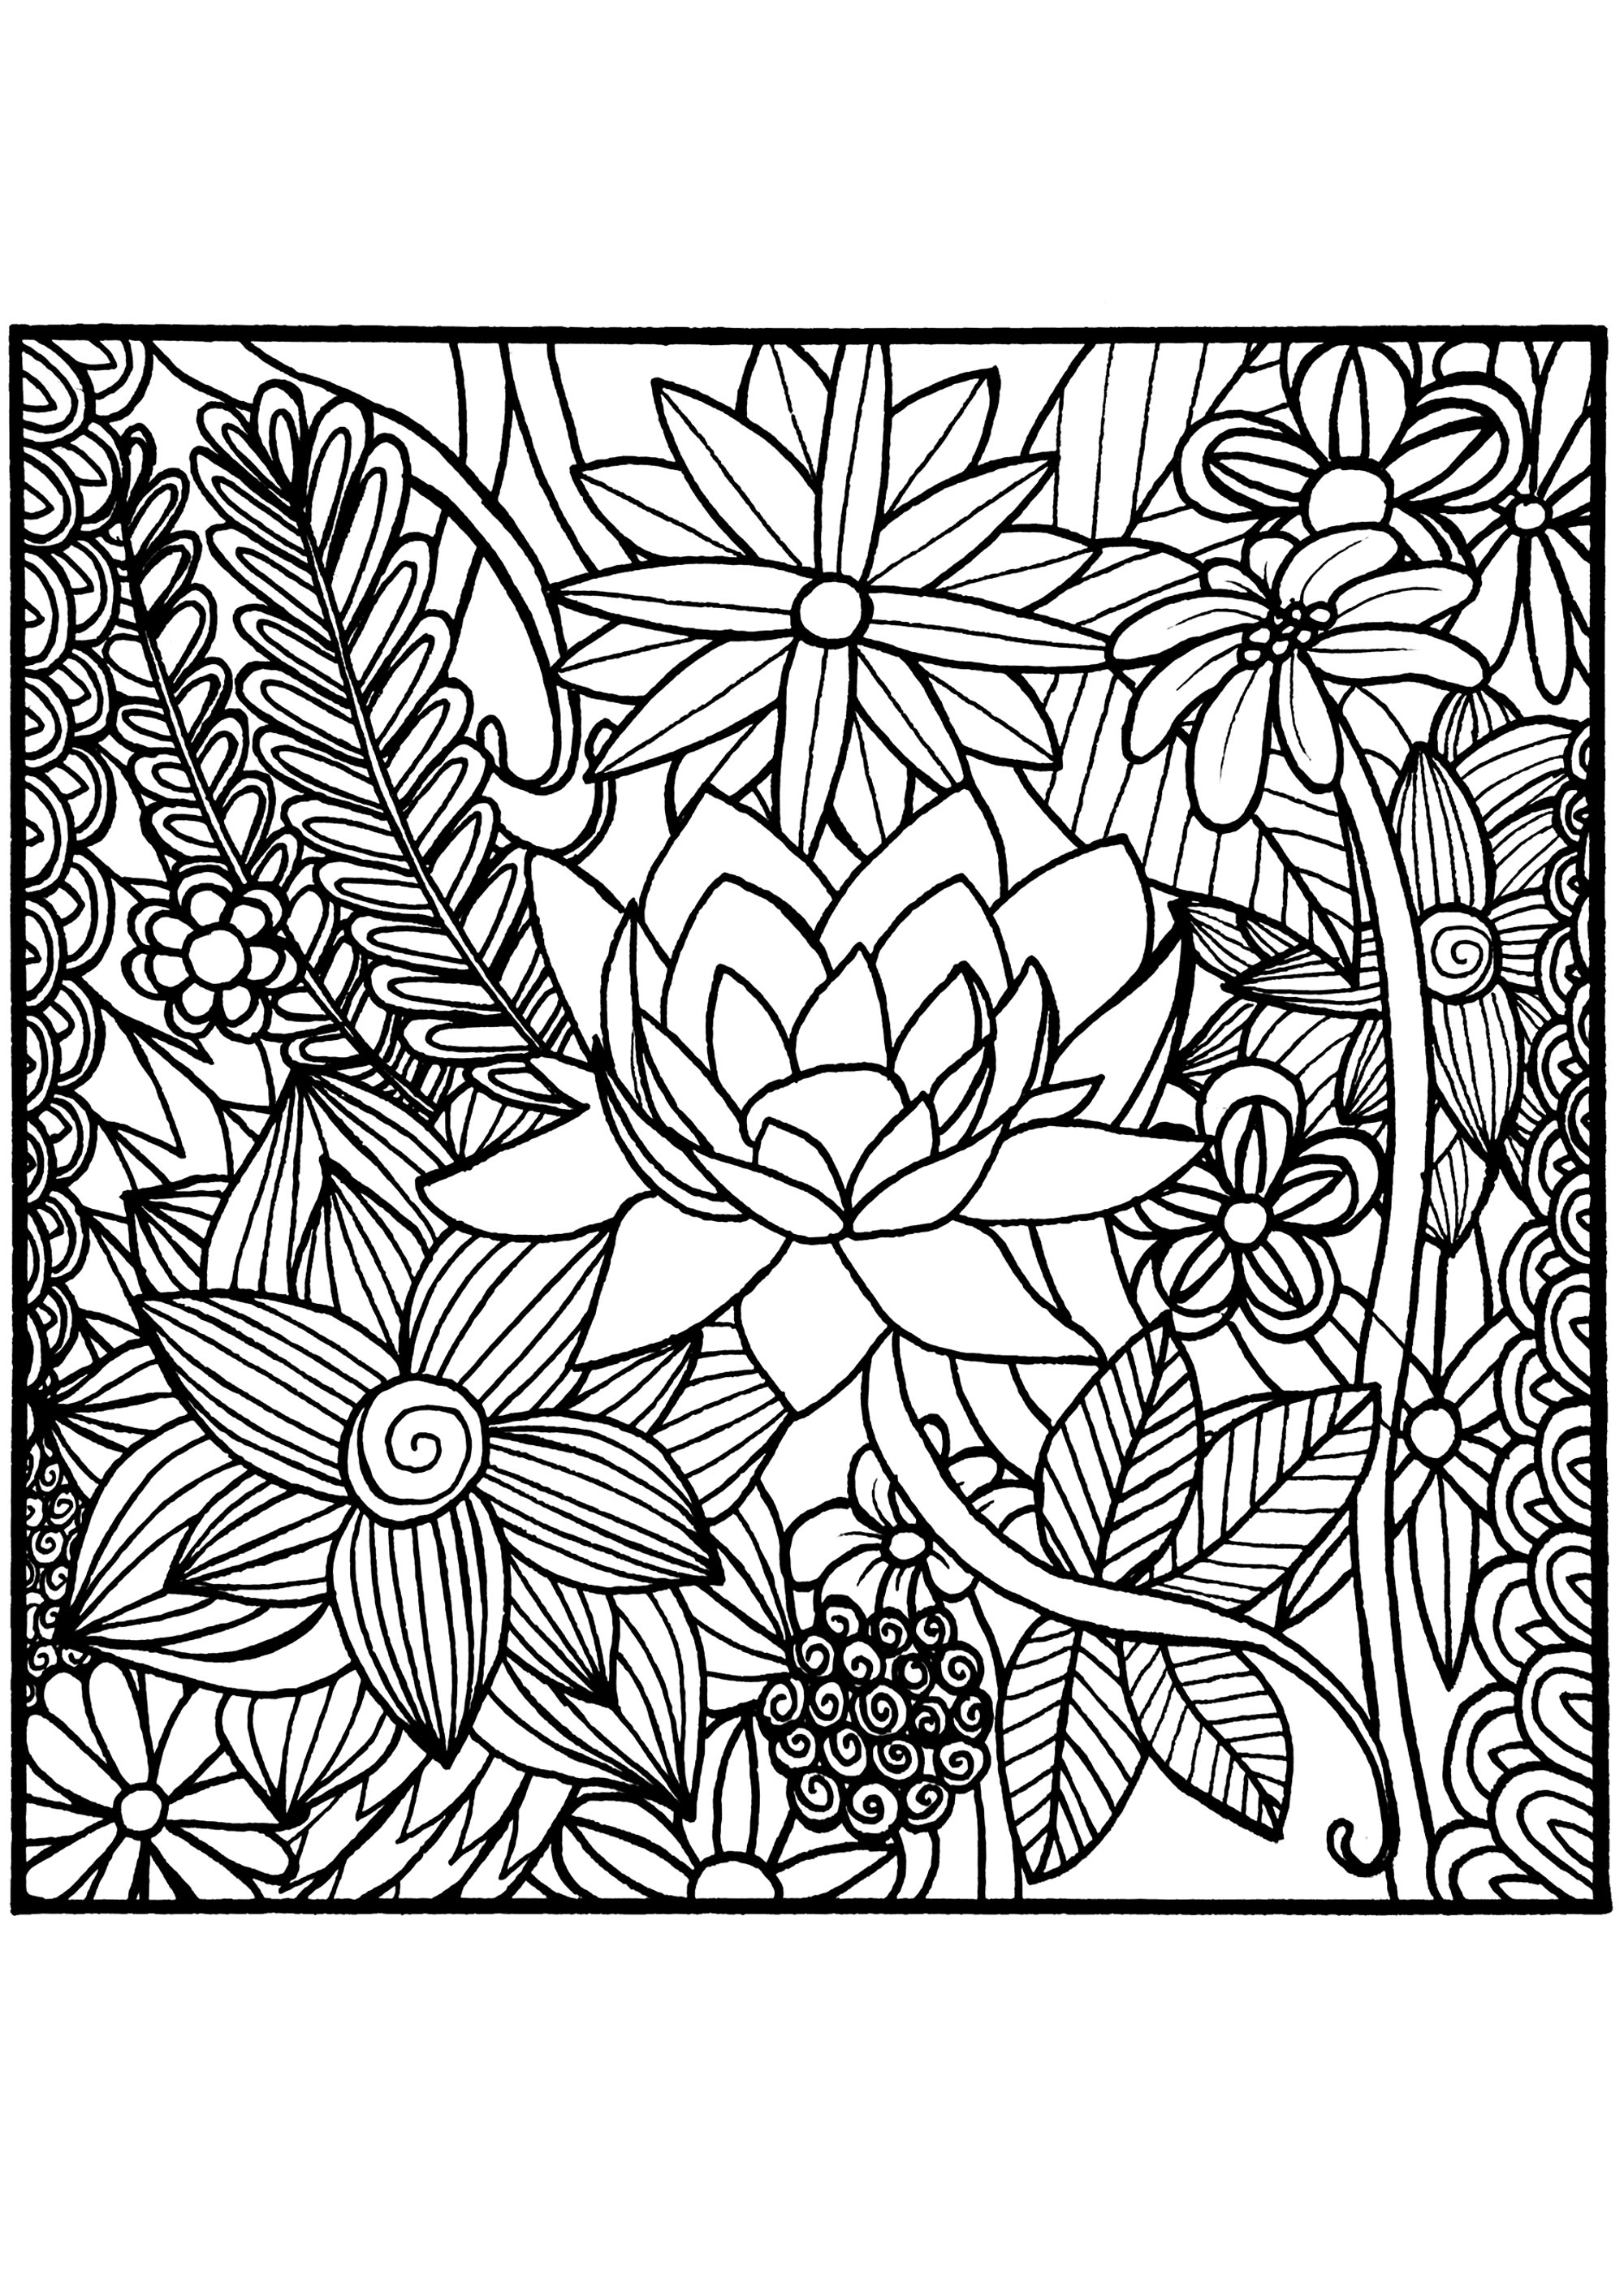 coloring websites peacock coloring pages to download and print for free websites coloring